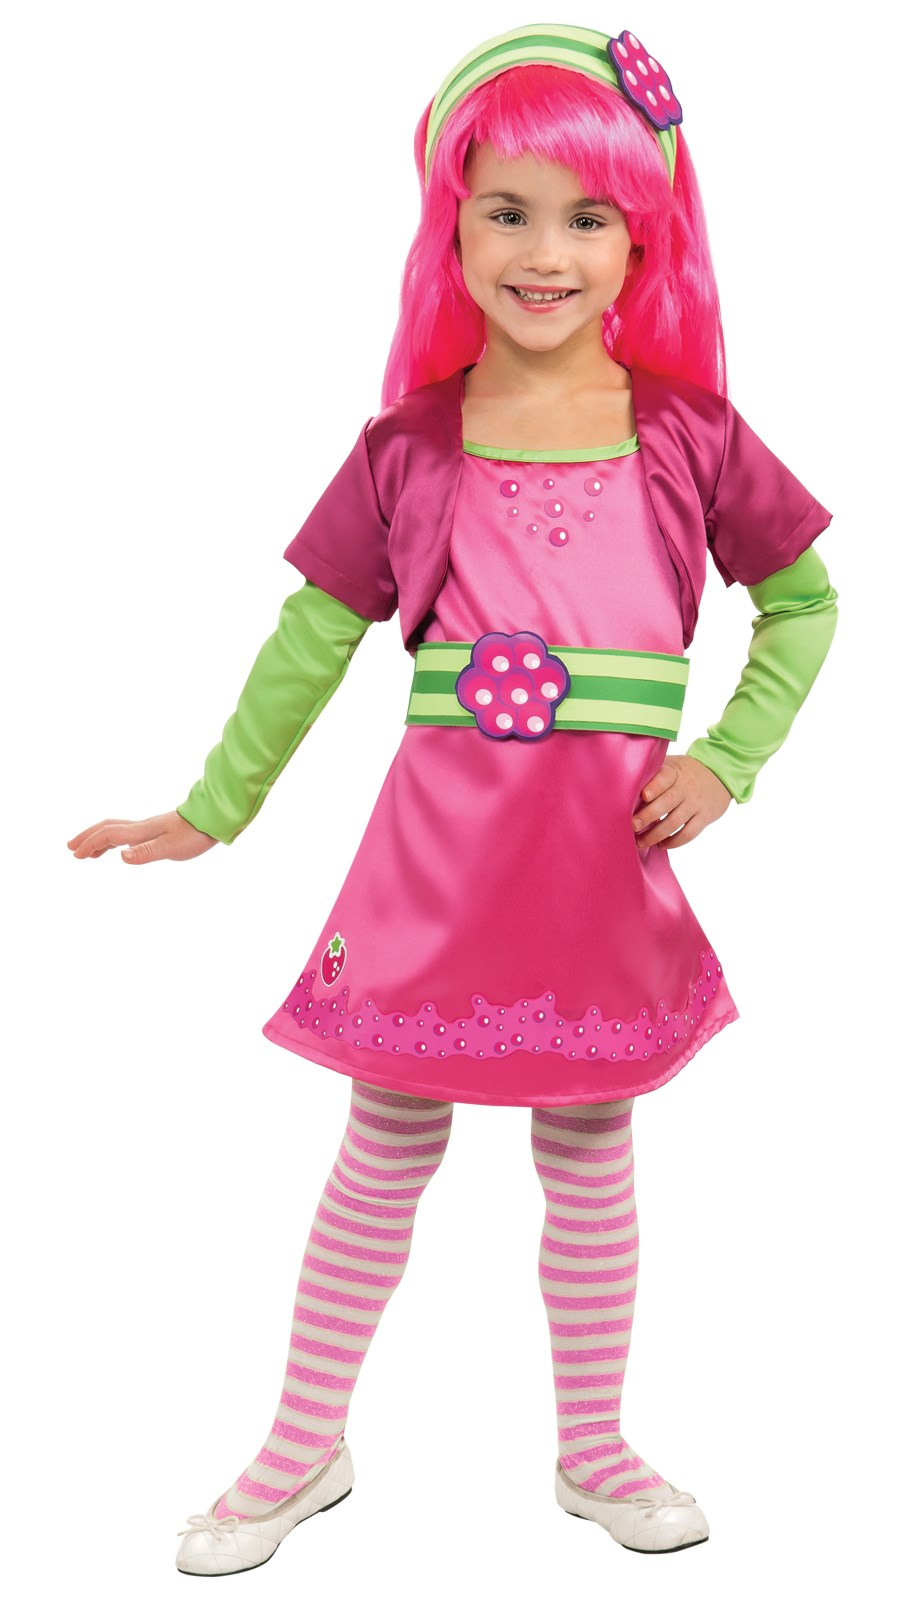 Strawberry Shortcake - Raspberry Torte Deluxe Toddler / Child Costume Toddler